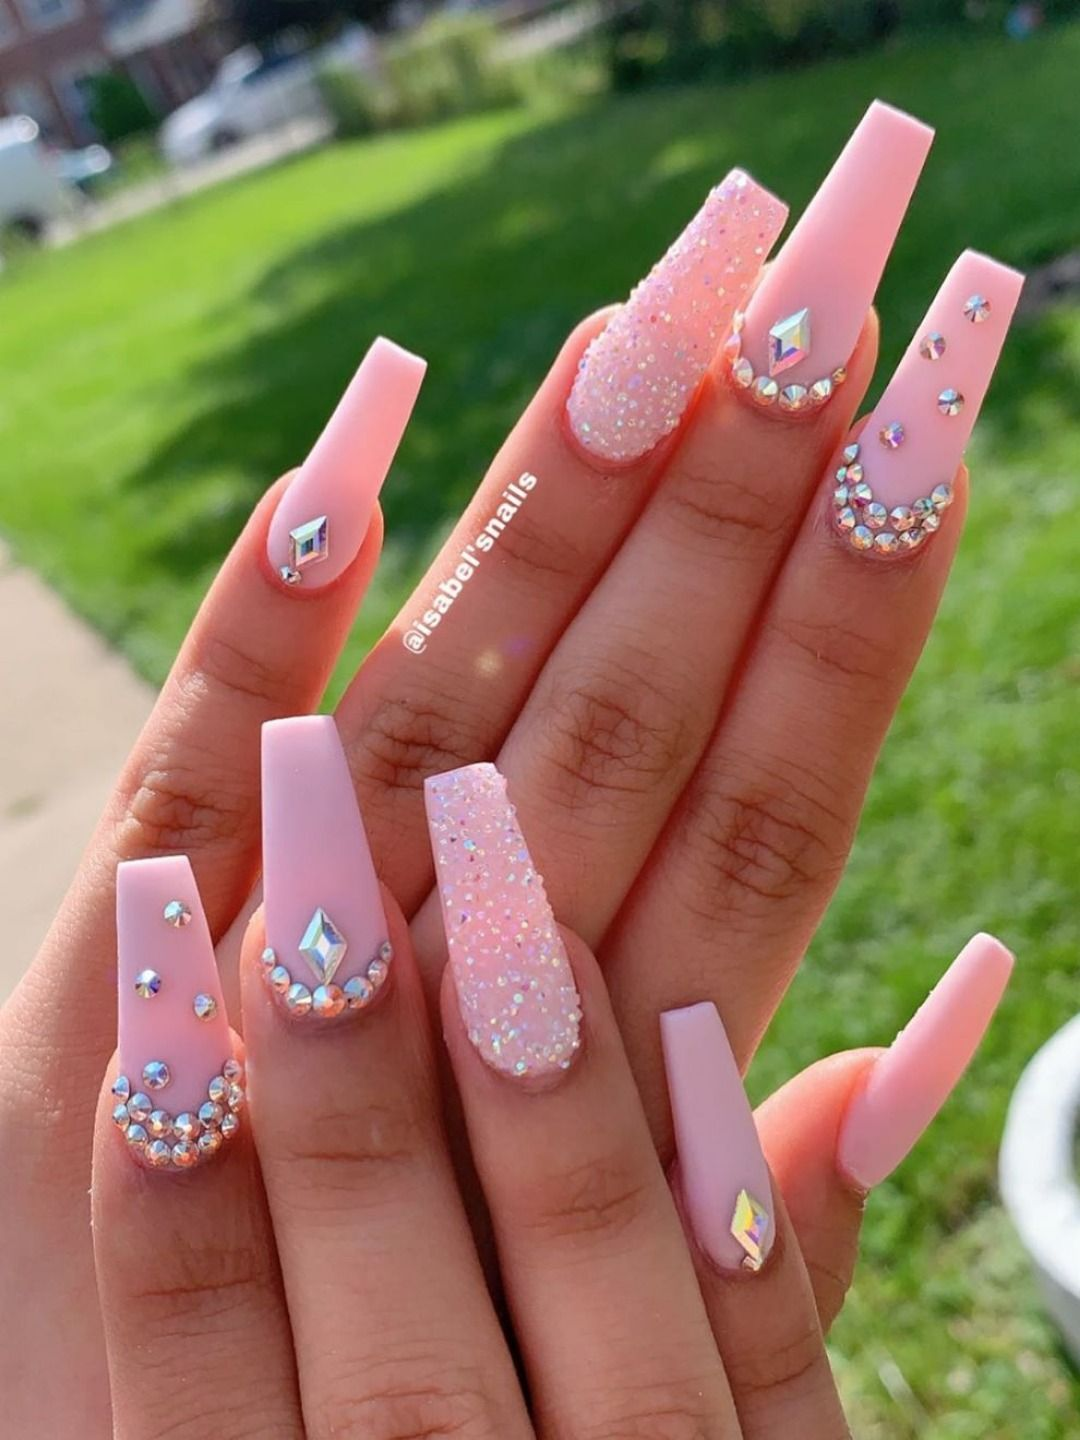 The Best Coffin Nails Ideas That Suit Everyone Nail Inspo Coffin Fig Blog In 2020 Baby Pink Nails Nails Design With Rhinestones Baby Pink Nails Acrylic